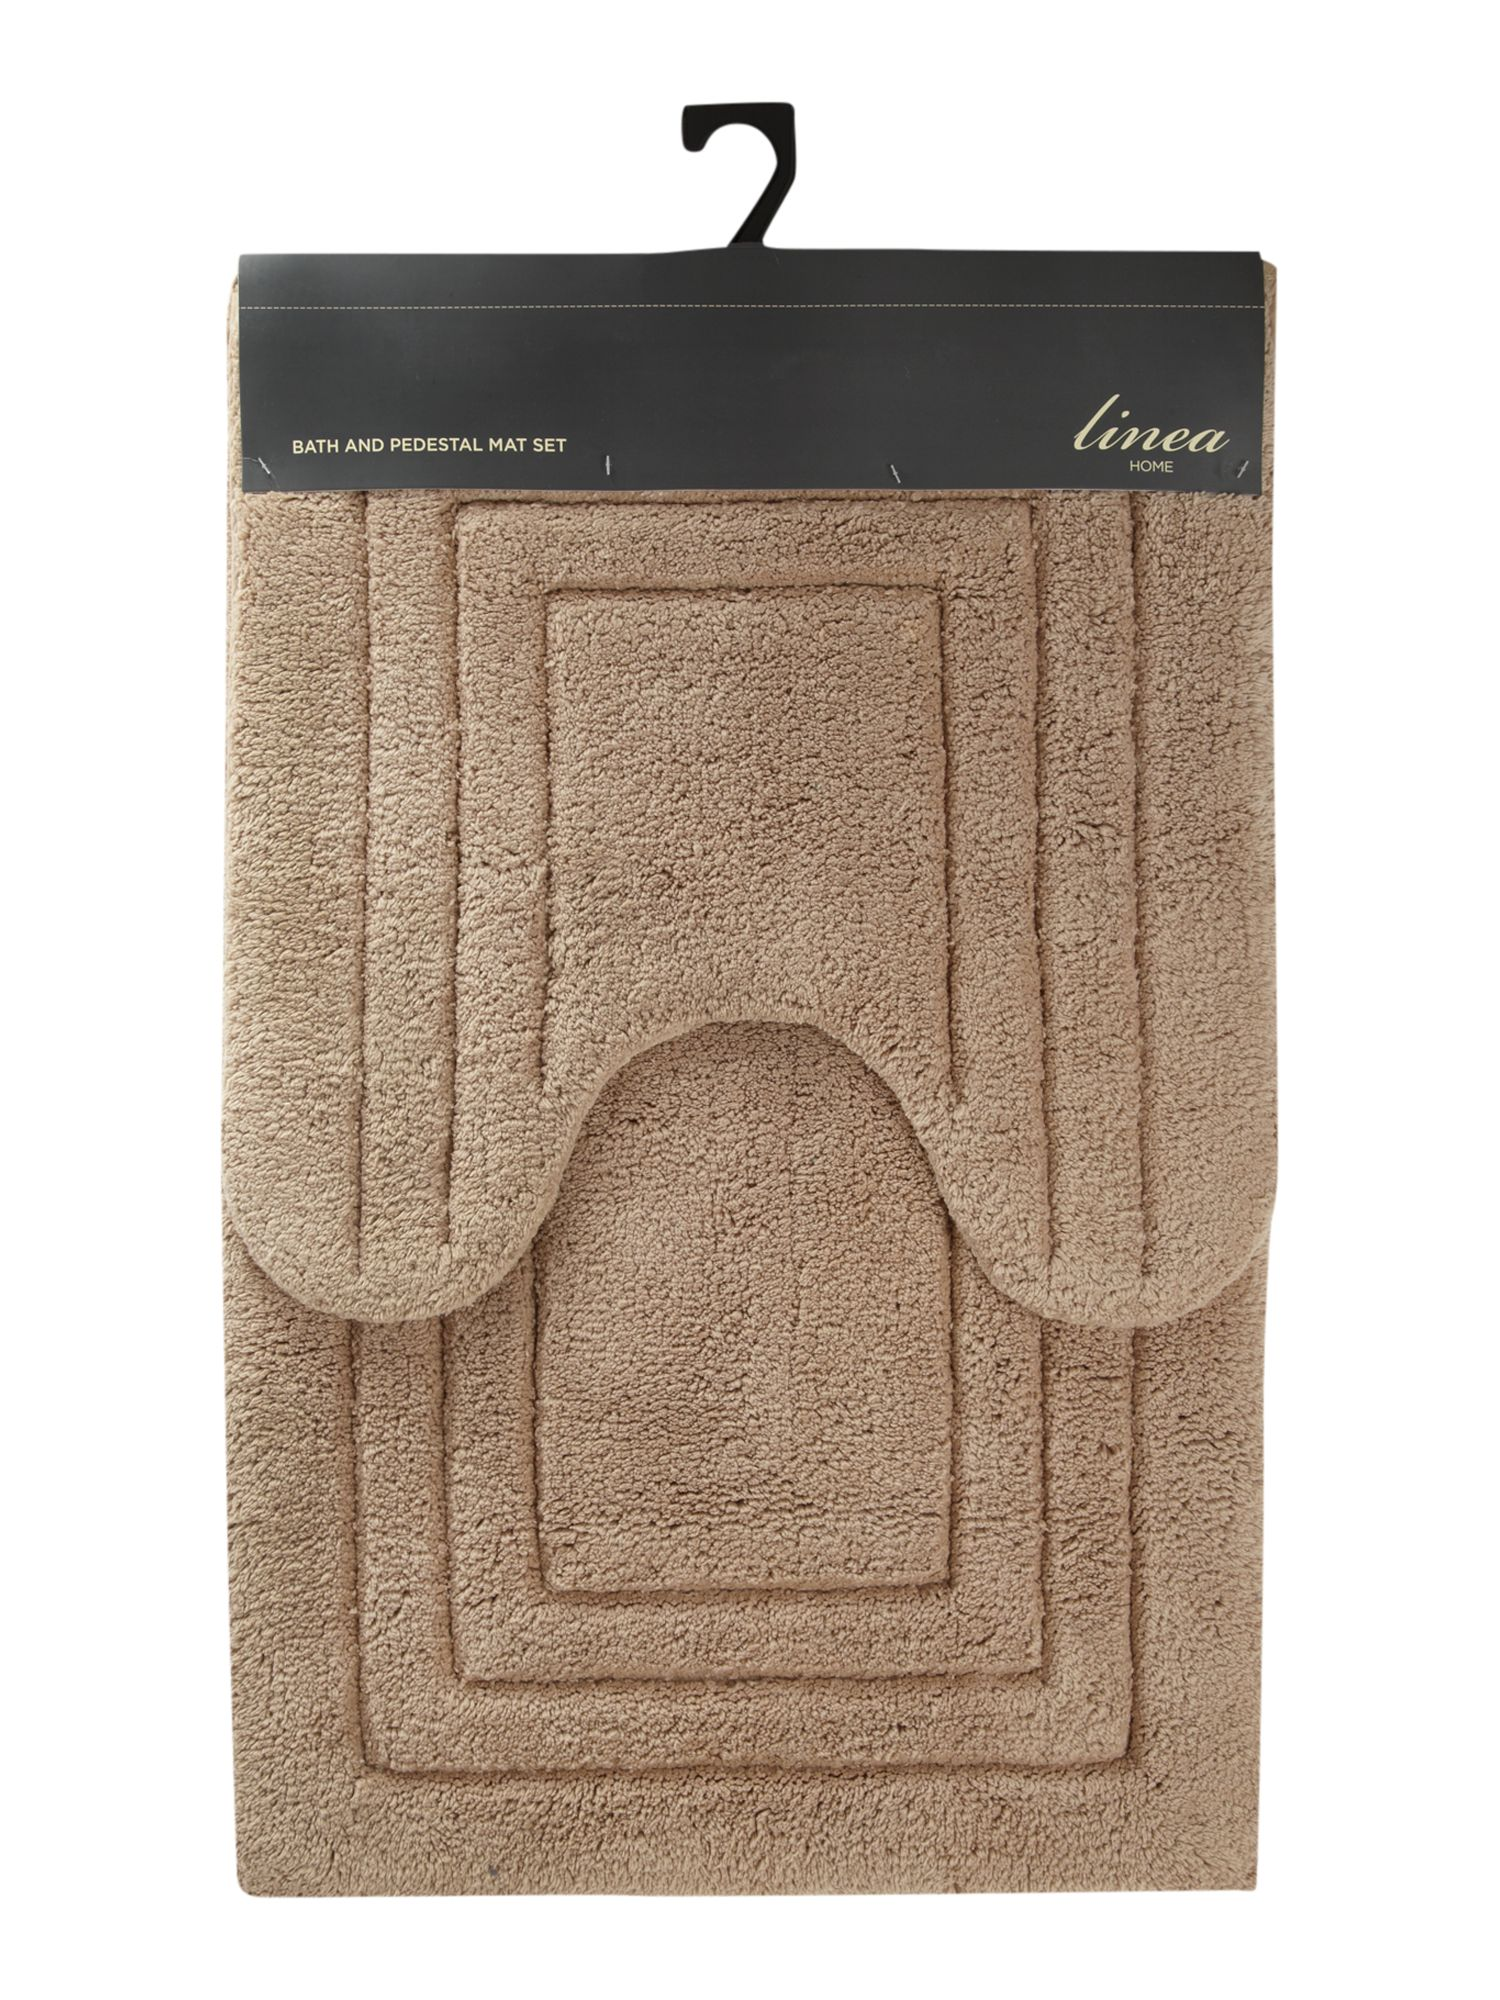 Bath mat and pedestal mat set in mushroom